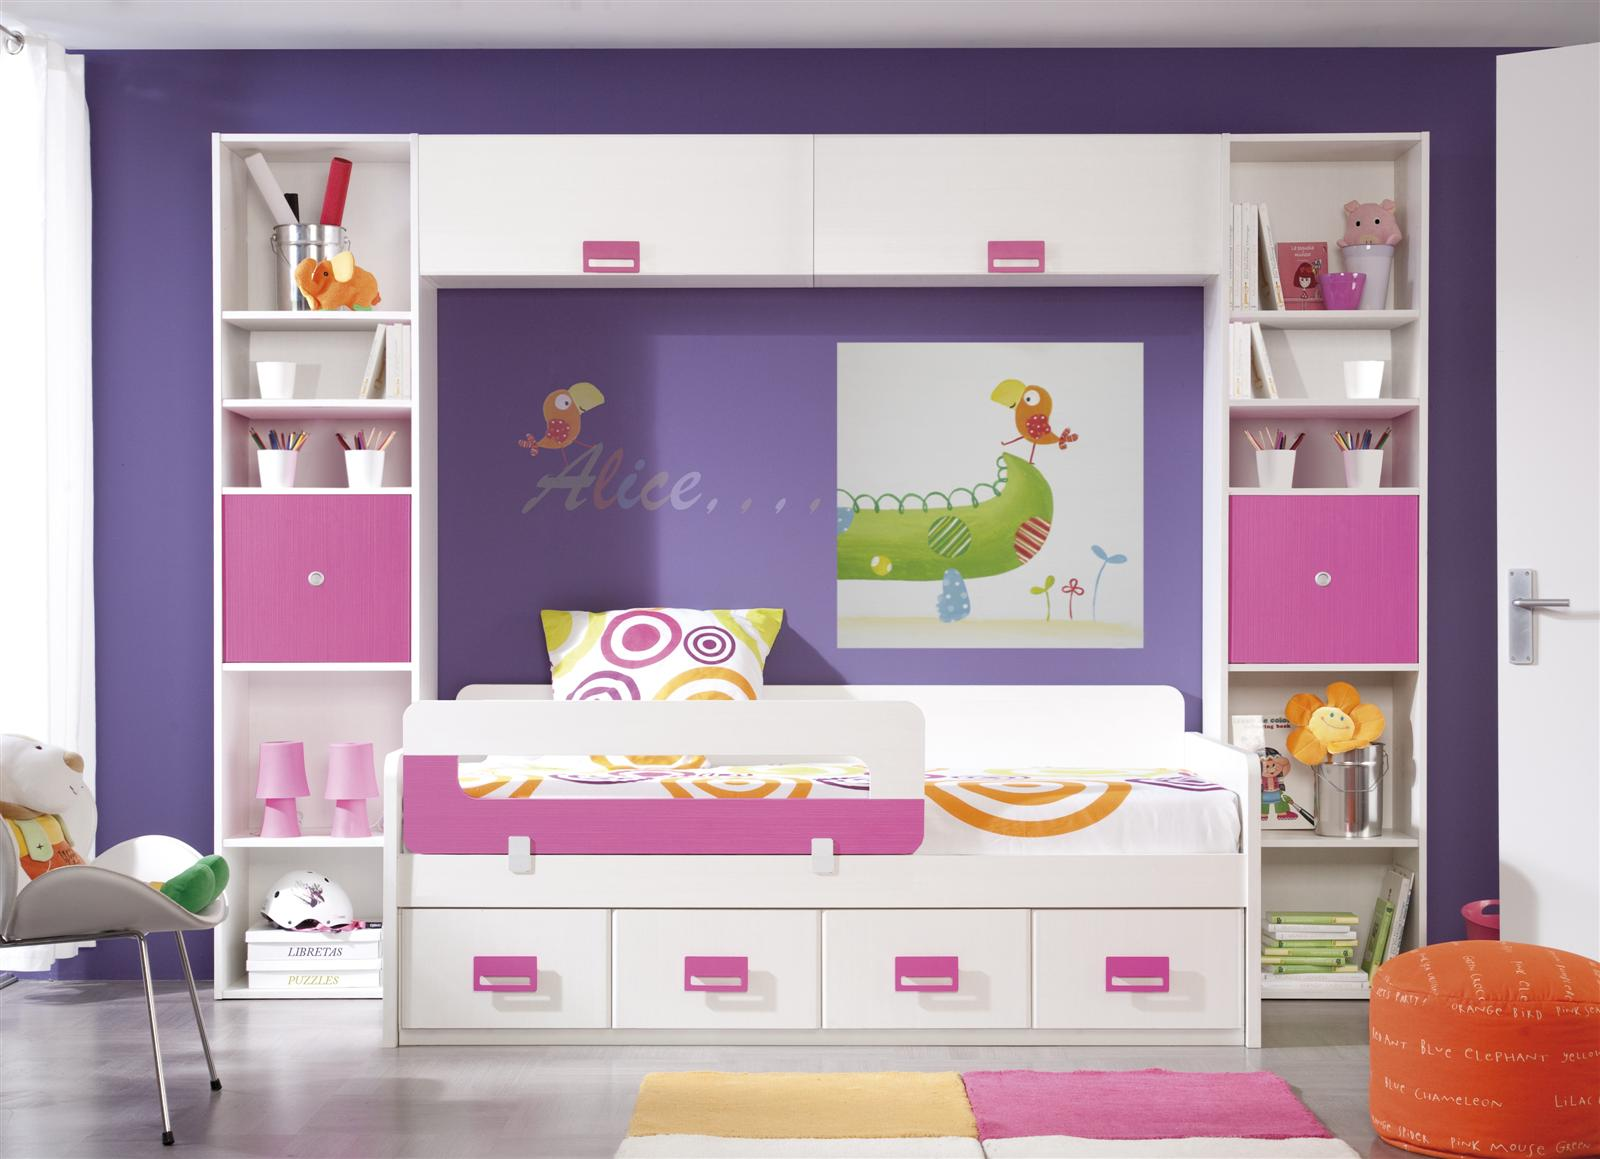 301 moved permanently - Colores habitaciones infantiles ...